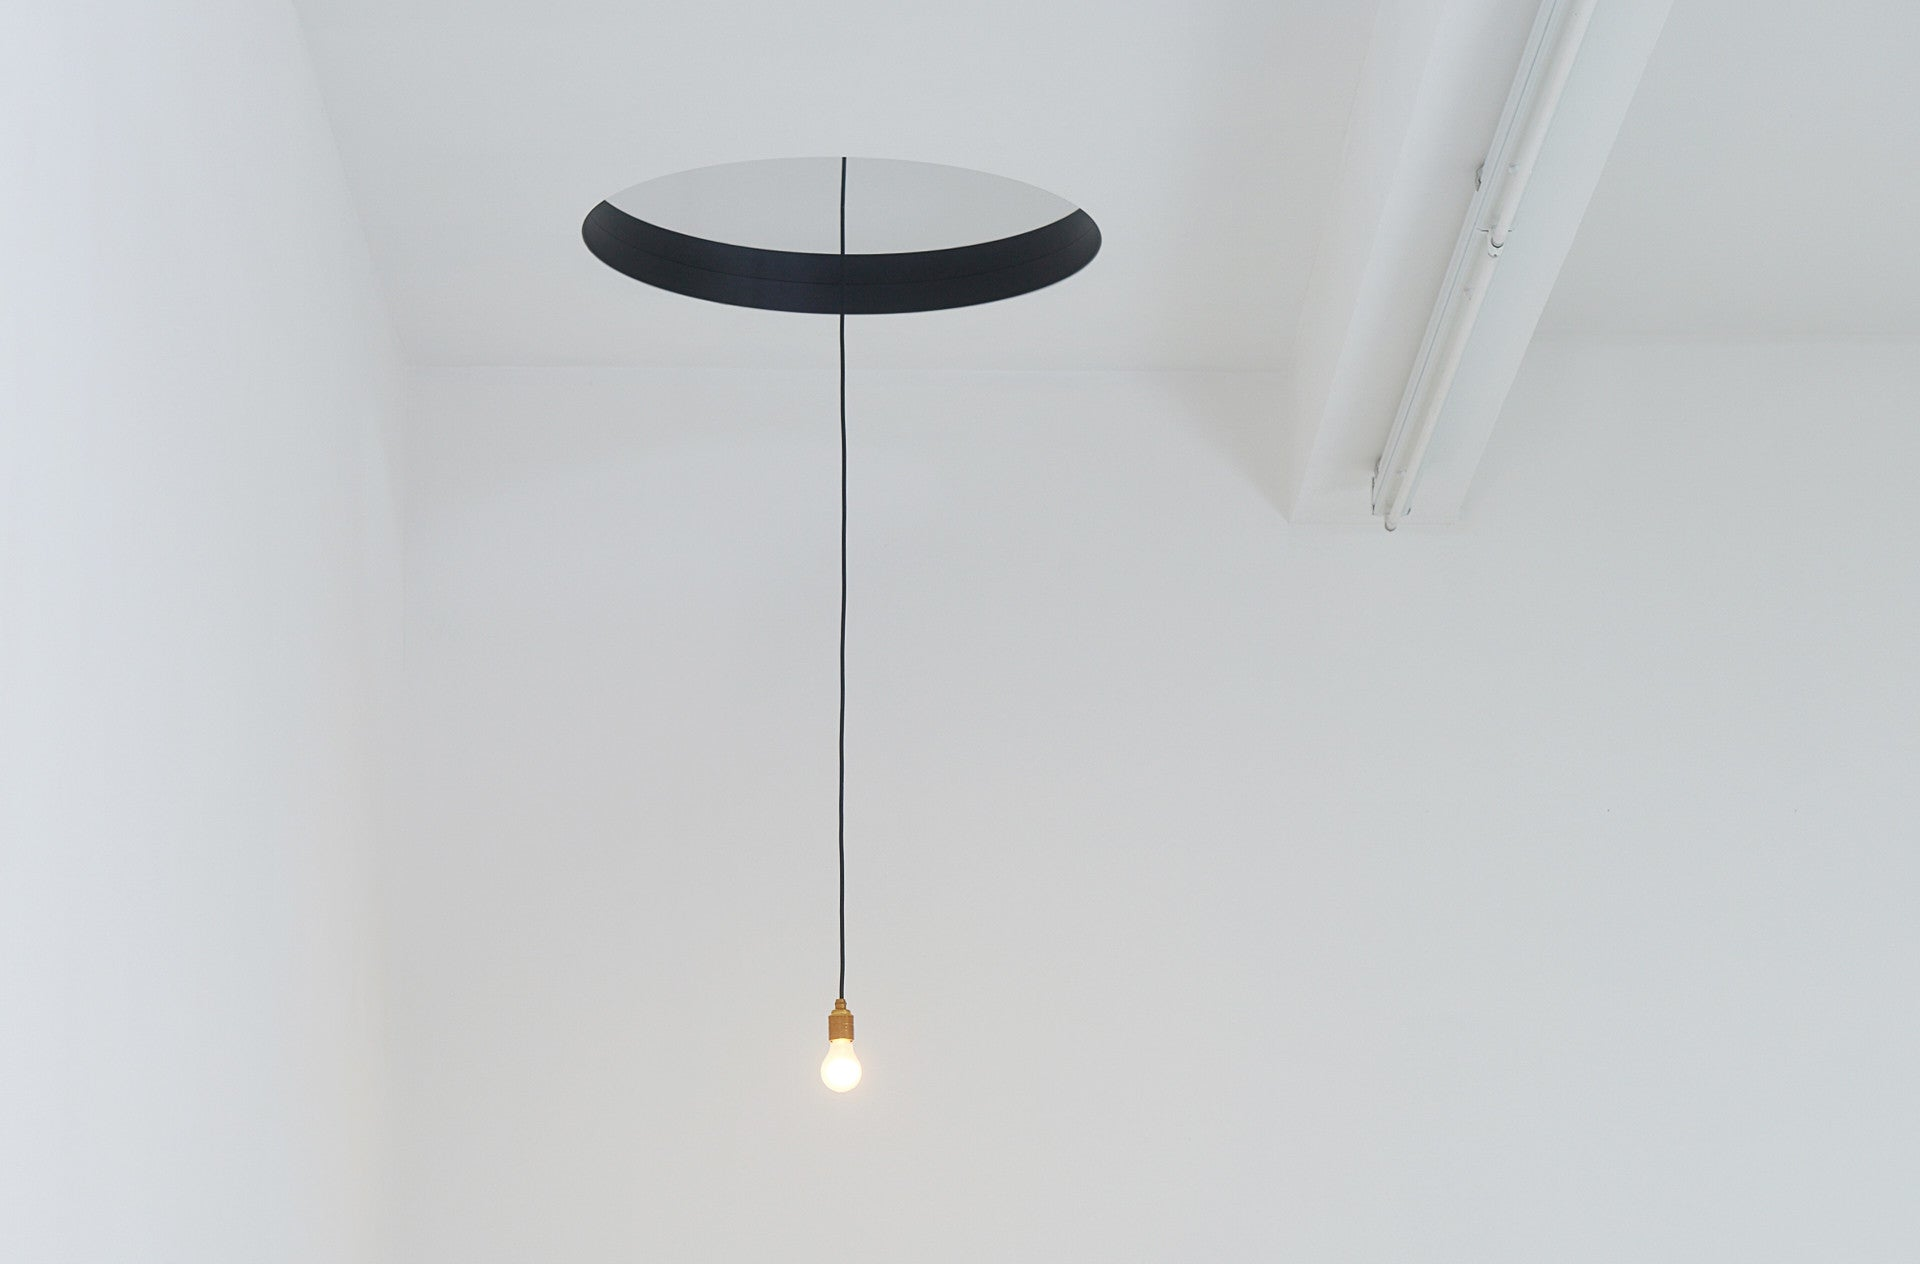 Endless Lamp by Gijs Van Vaerenbergh